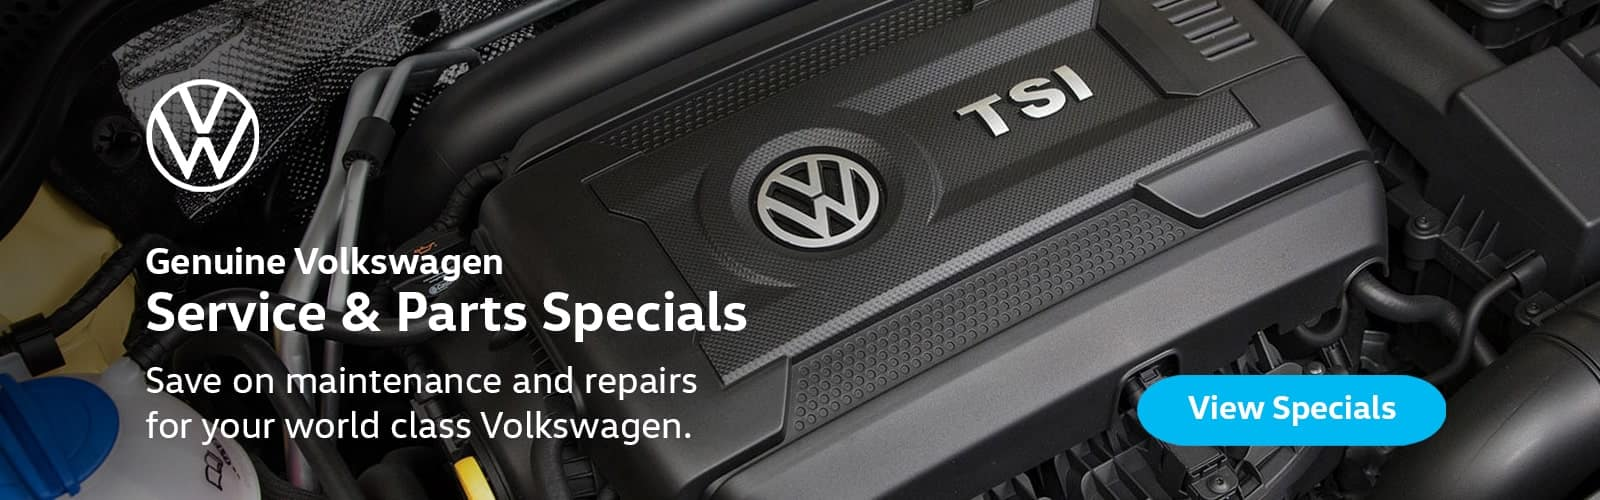 vw-service-homepage-banner-1600×5002-min